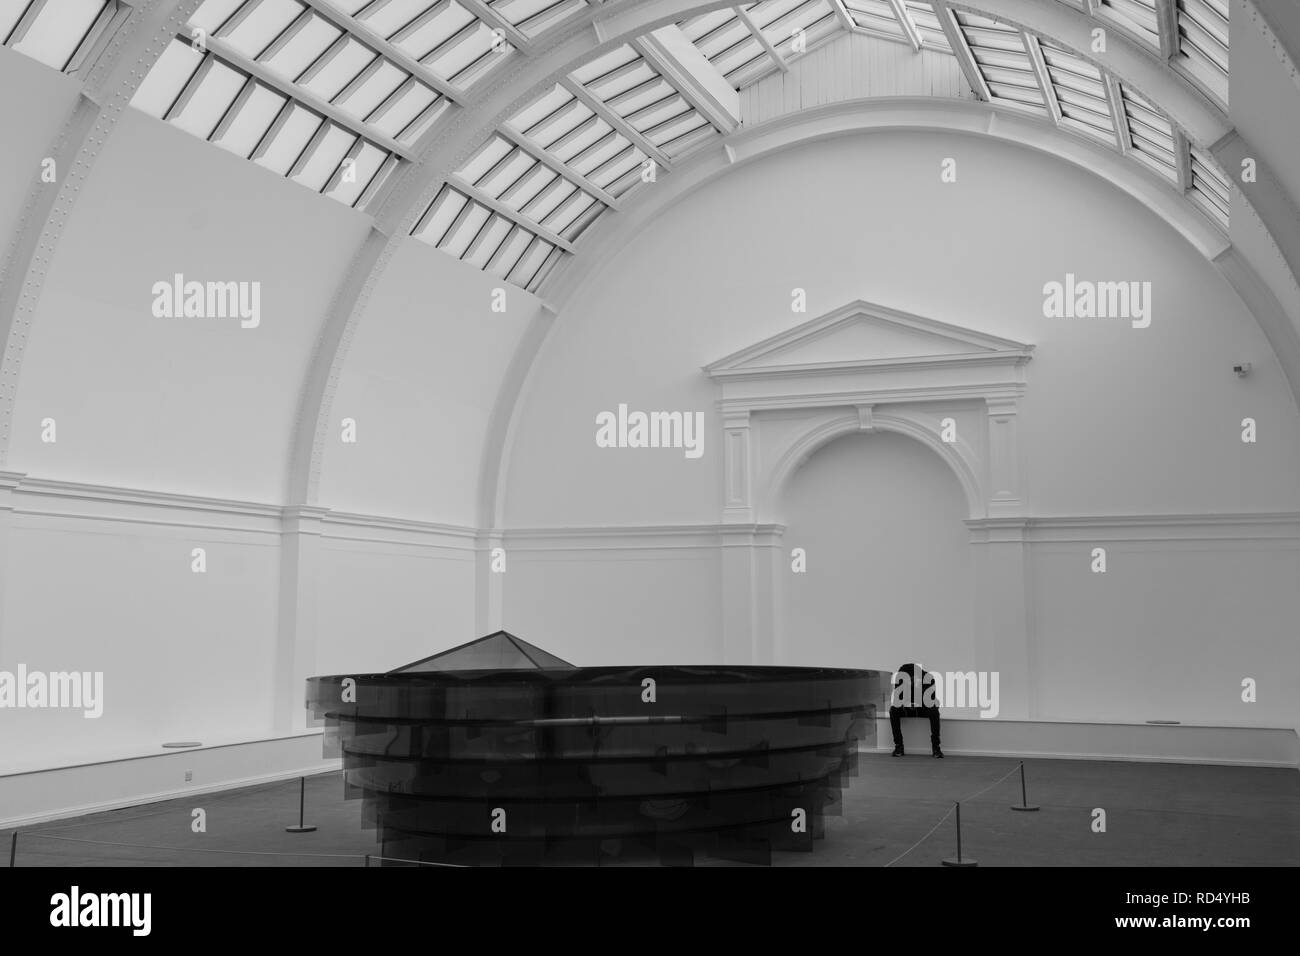 Man sat alone in Central Court at Leeds Art Gallery,West Yorkshire,England,UK. - Stock Image